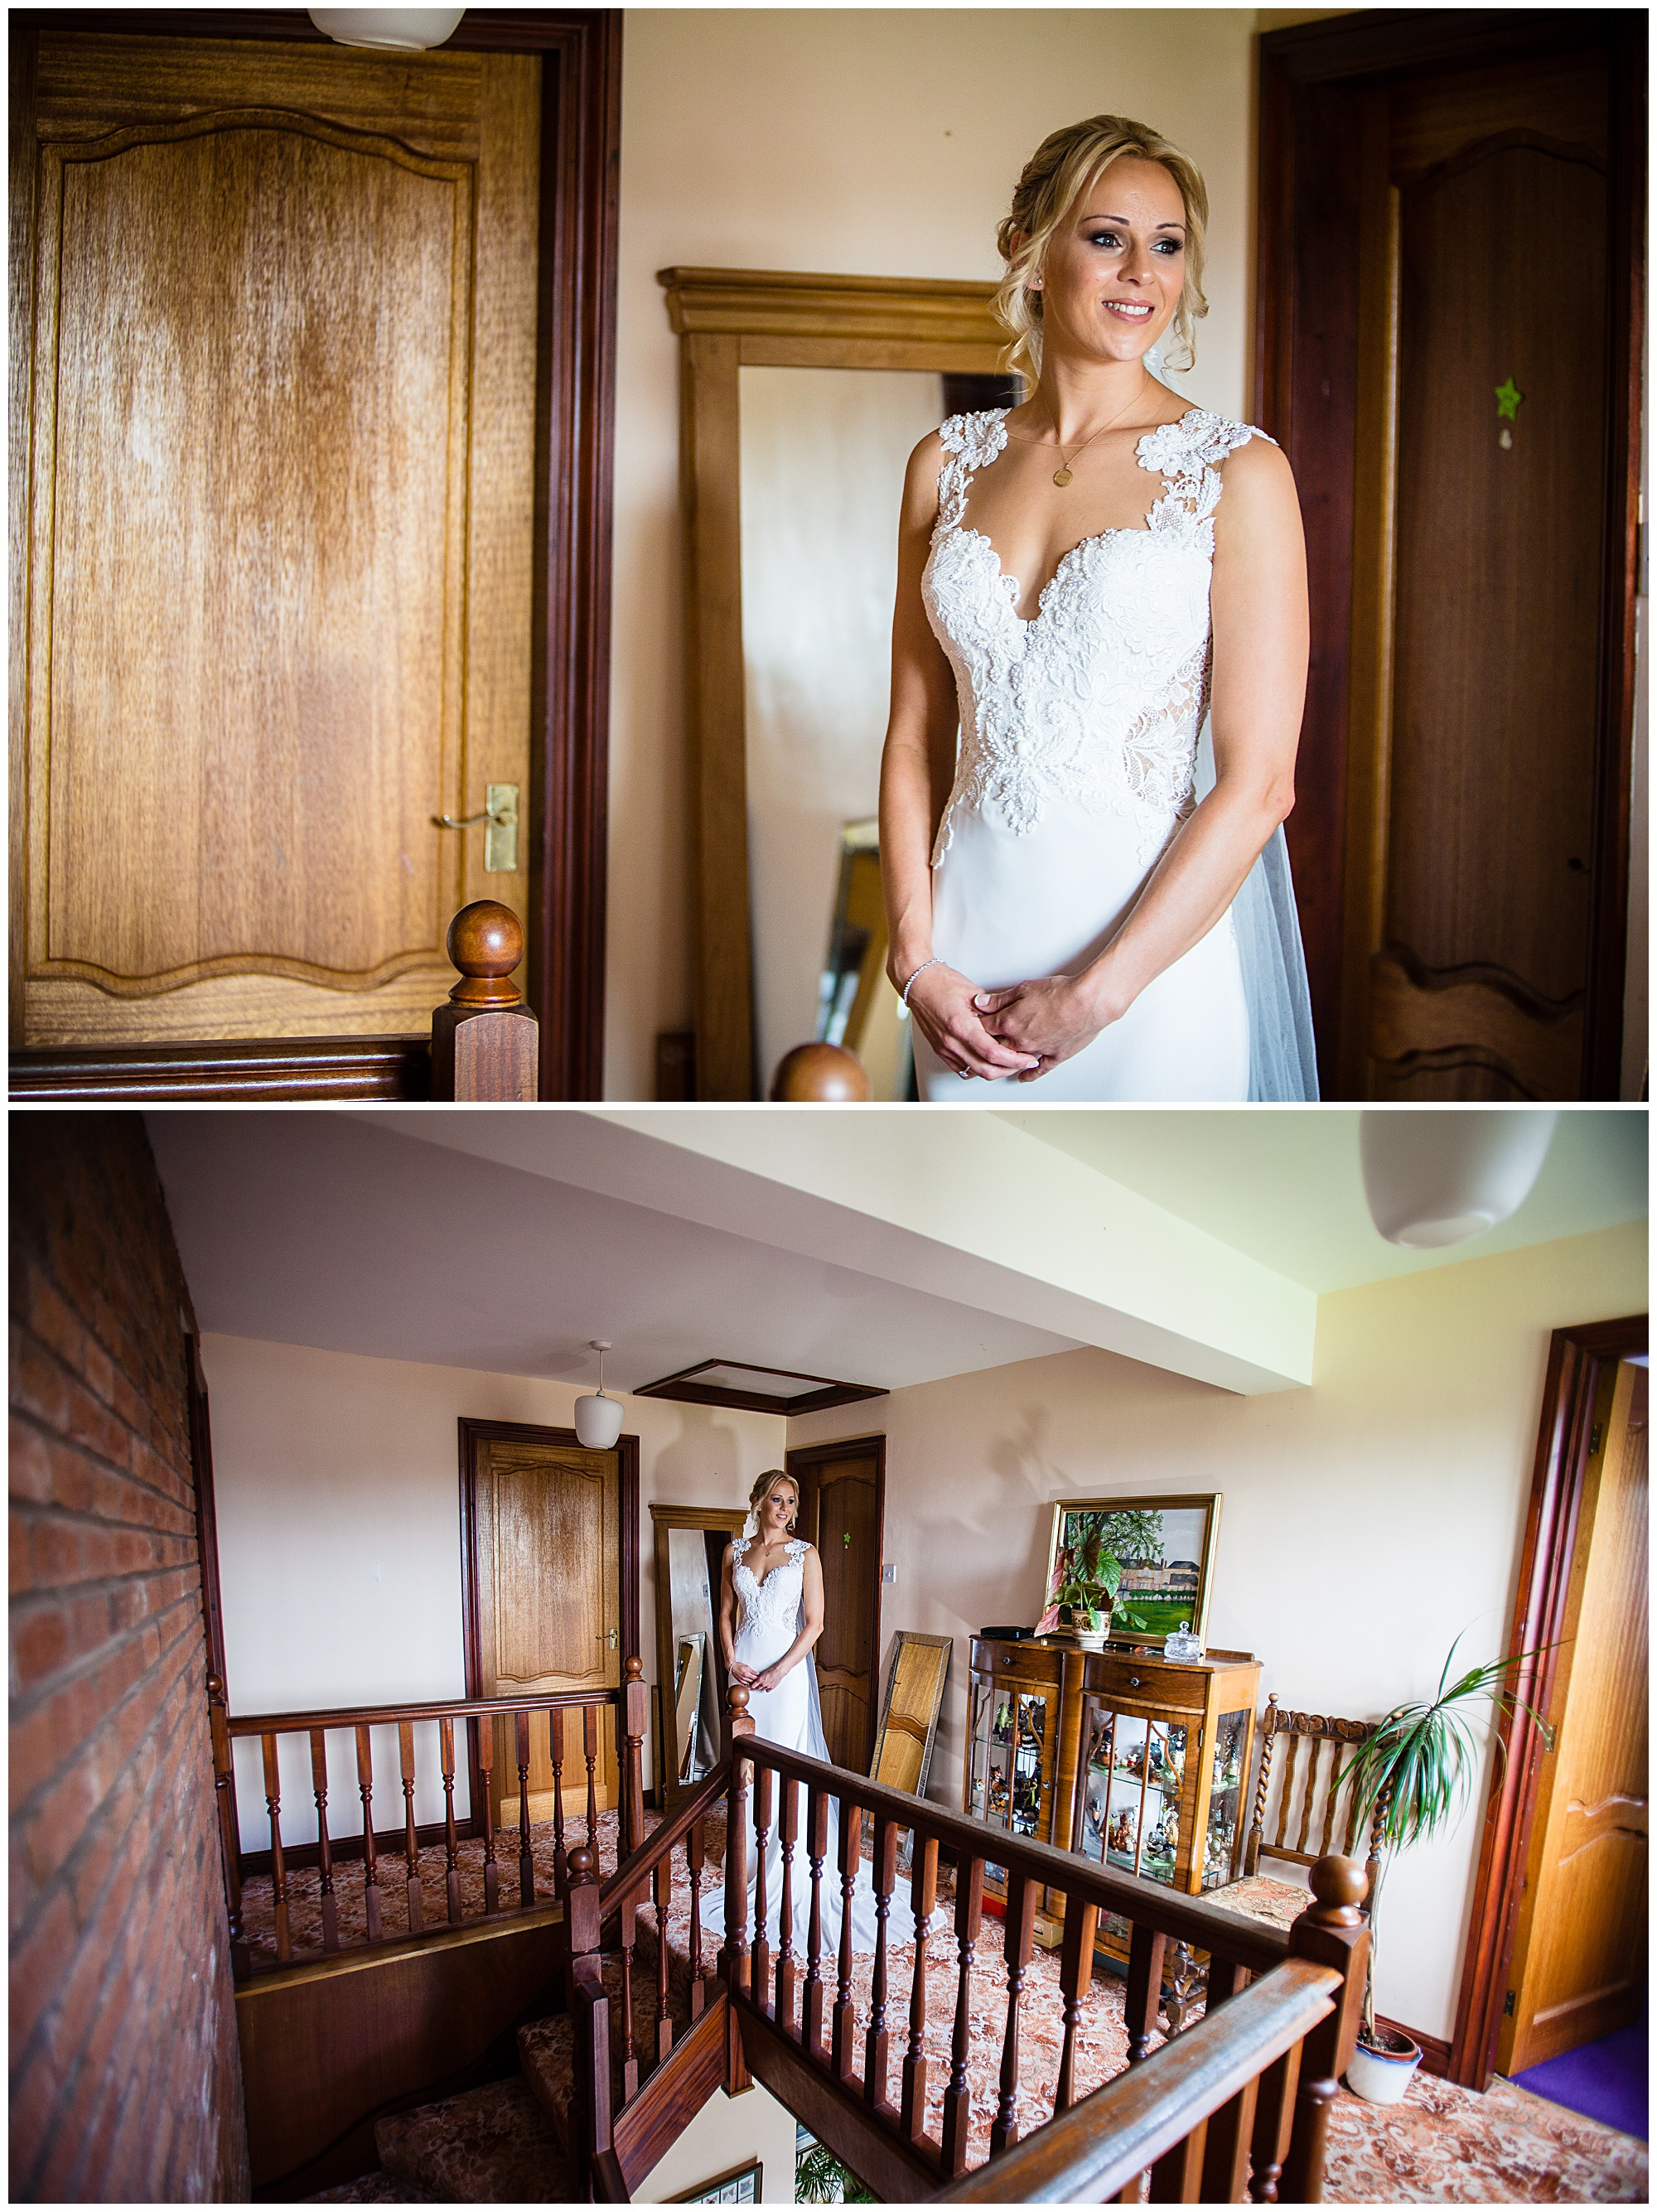 bride looking out of the window in deep thought